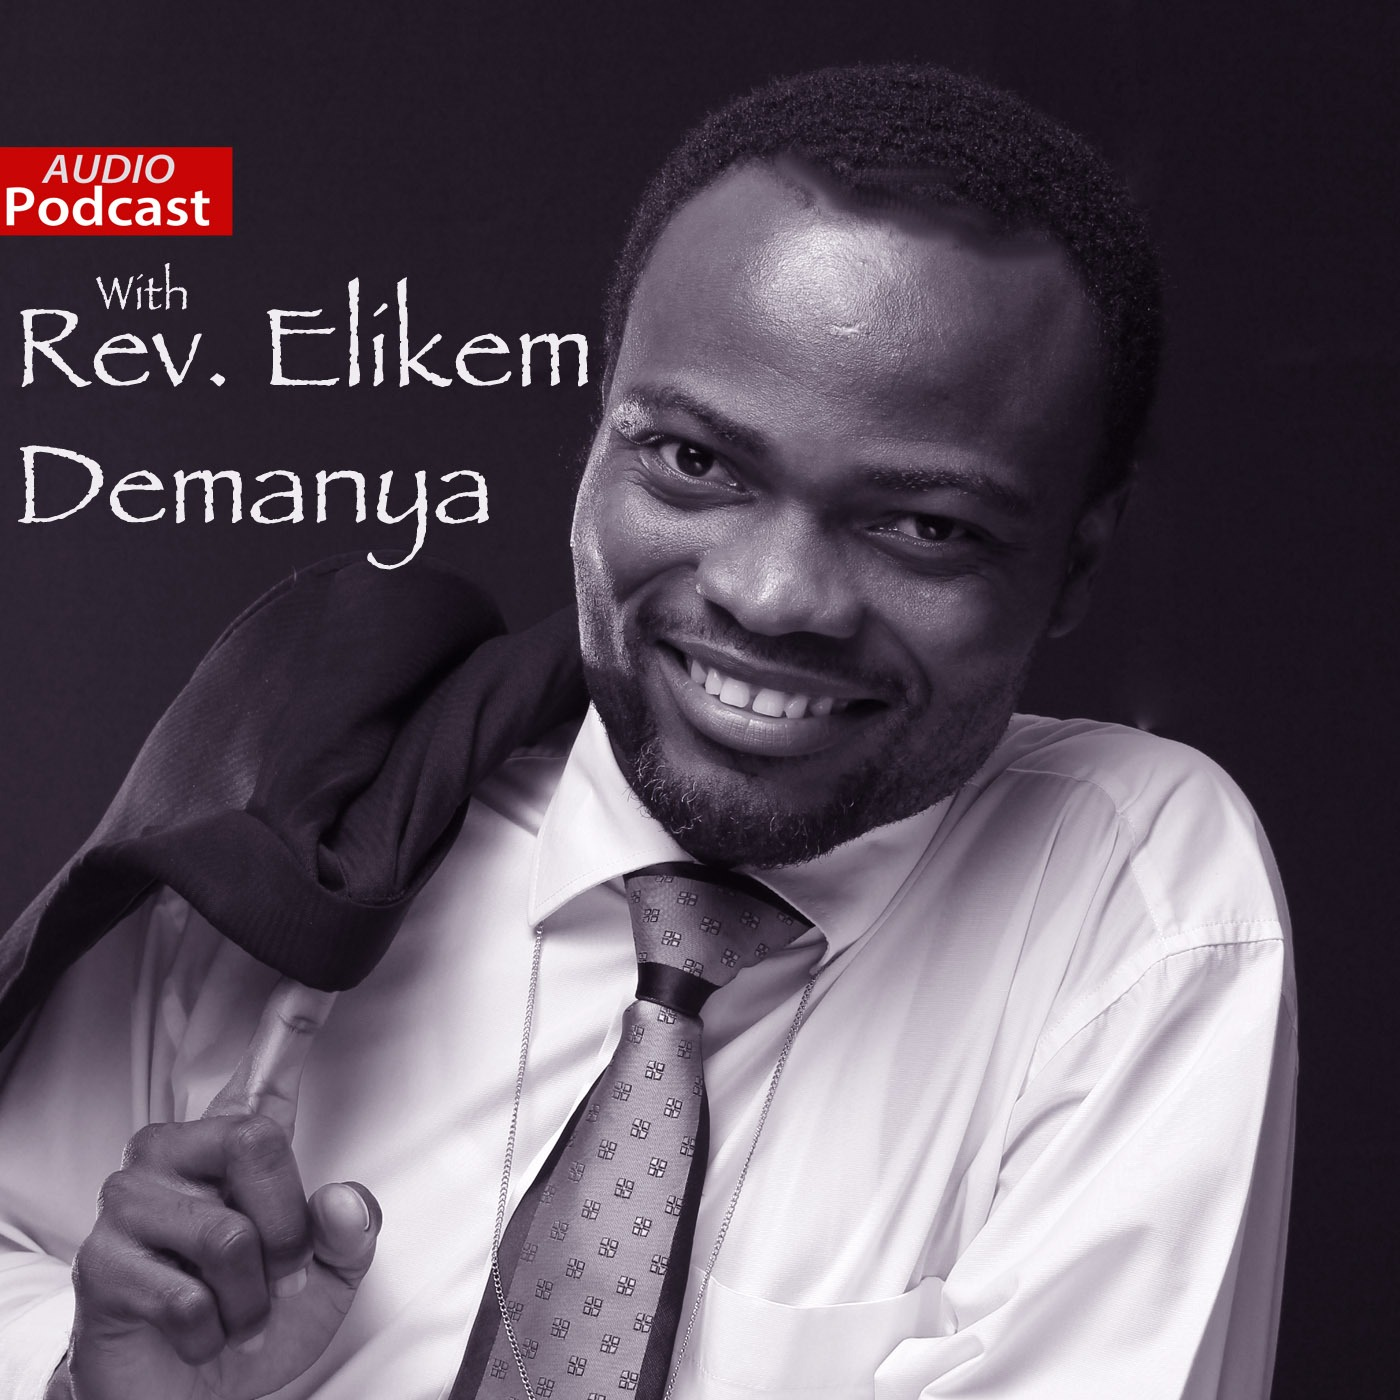 Elikem Demanya's Podcast